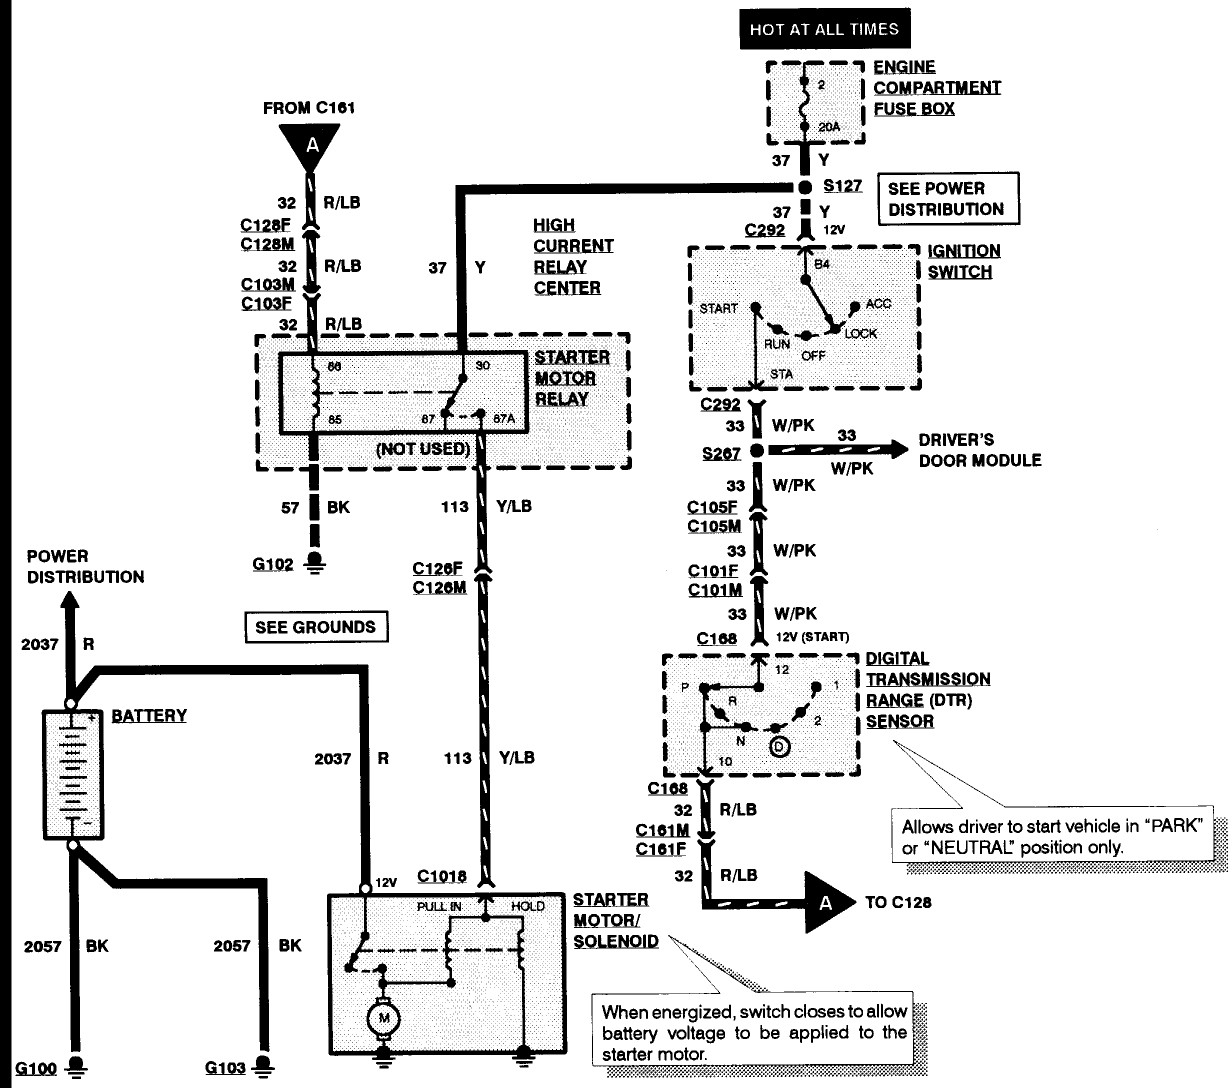 1991 F150 Ignition System Diagram - machine learning Harley Starter Solenoid Wiring Diagram on solenoid switch diagram, starter solenoid wire, starter solenoid schematic, starter solenoid trouble shooting, starter solenoid coil, starter solenoid operation, starter solenoid switch, starter solenoid relay, chevy s10 starter diagram, starter solenoid assembly diagram, starter parts diagram, starter solenoid ford, how does a solenoid work diagram, starter solenoid connector, starter solenoid ignition system, starter solenoid voltage, starter solenoid problems, starter motor, starter solenoid circuit,